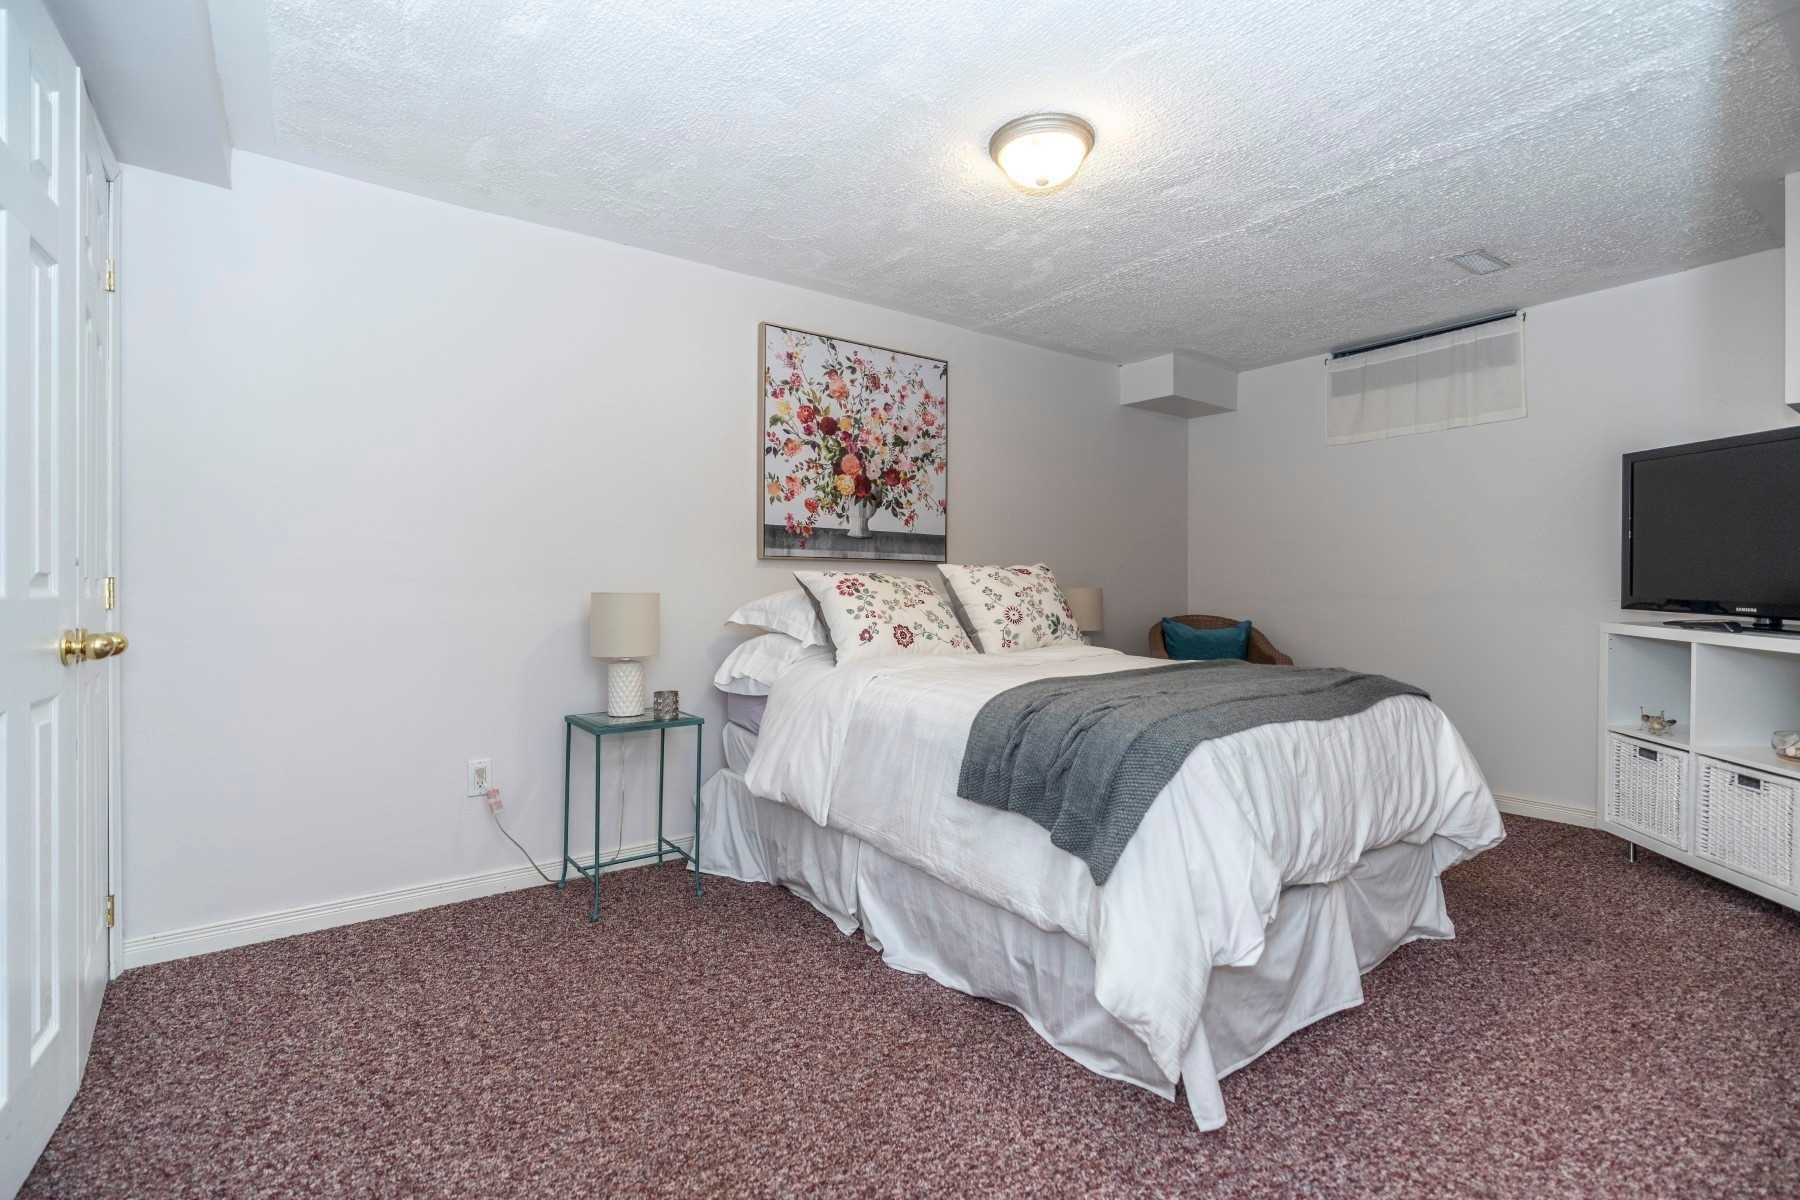 Photo 18: Photos: 547 Camelot Drive in Oshawa: Eastdale House (2-Storey) for sale : MLS®# E4529227